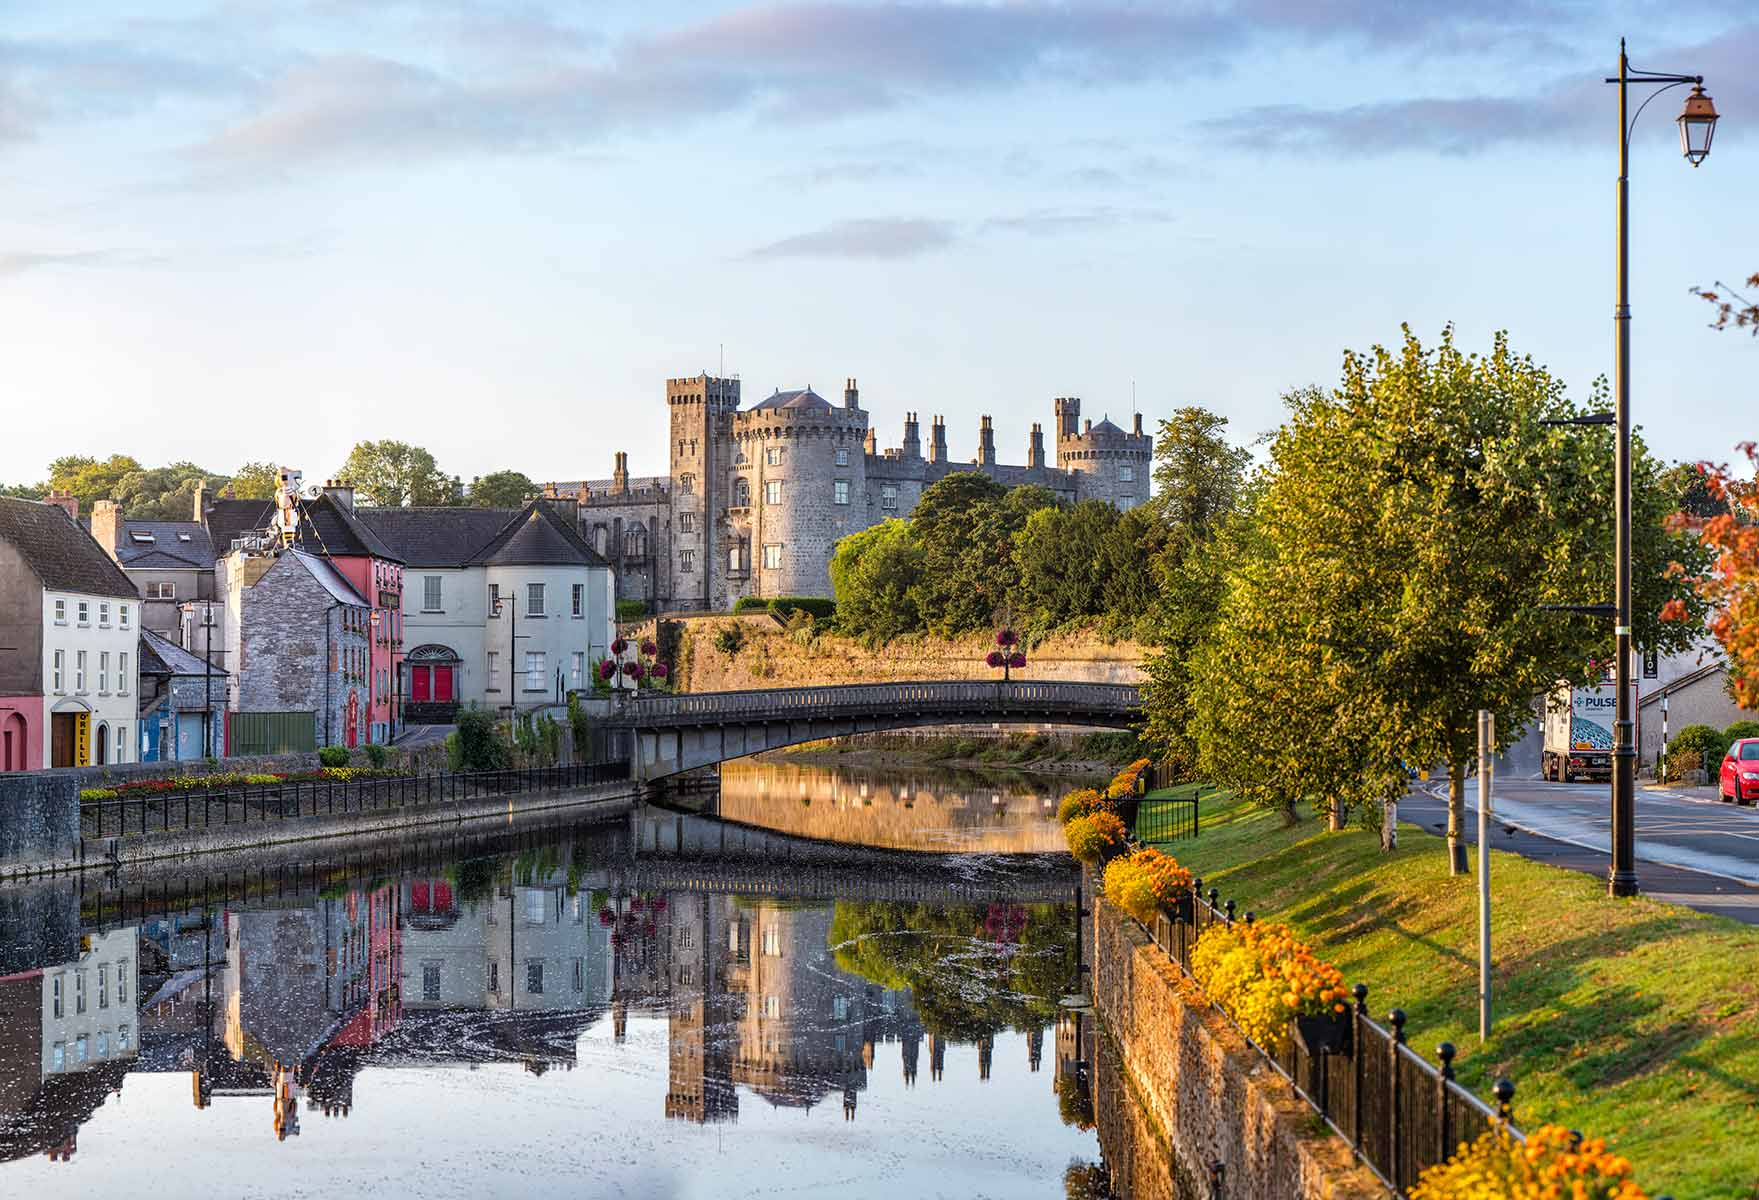 Kilkenny Castle and River Nore